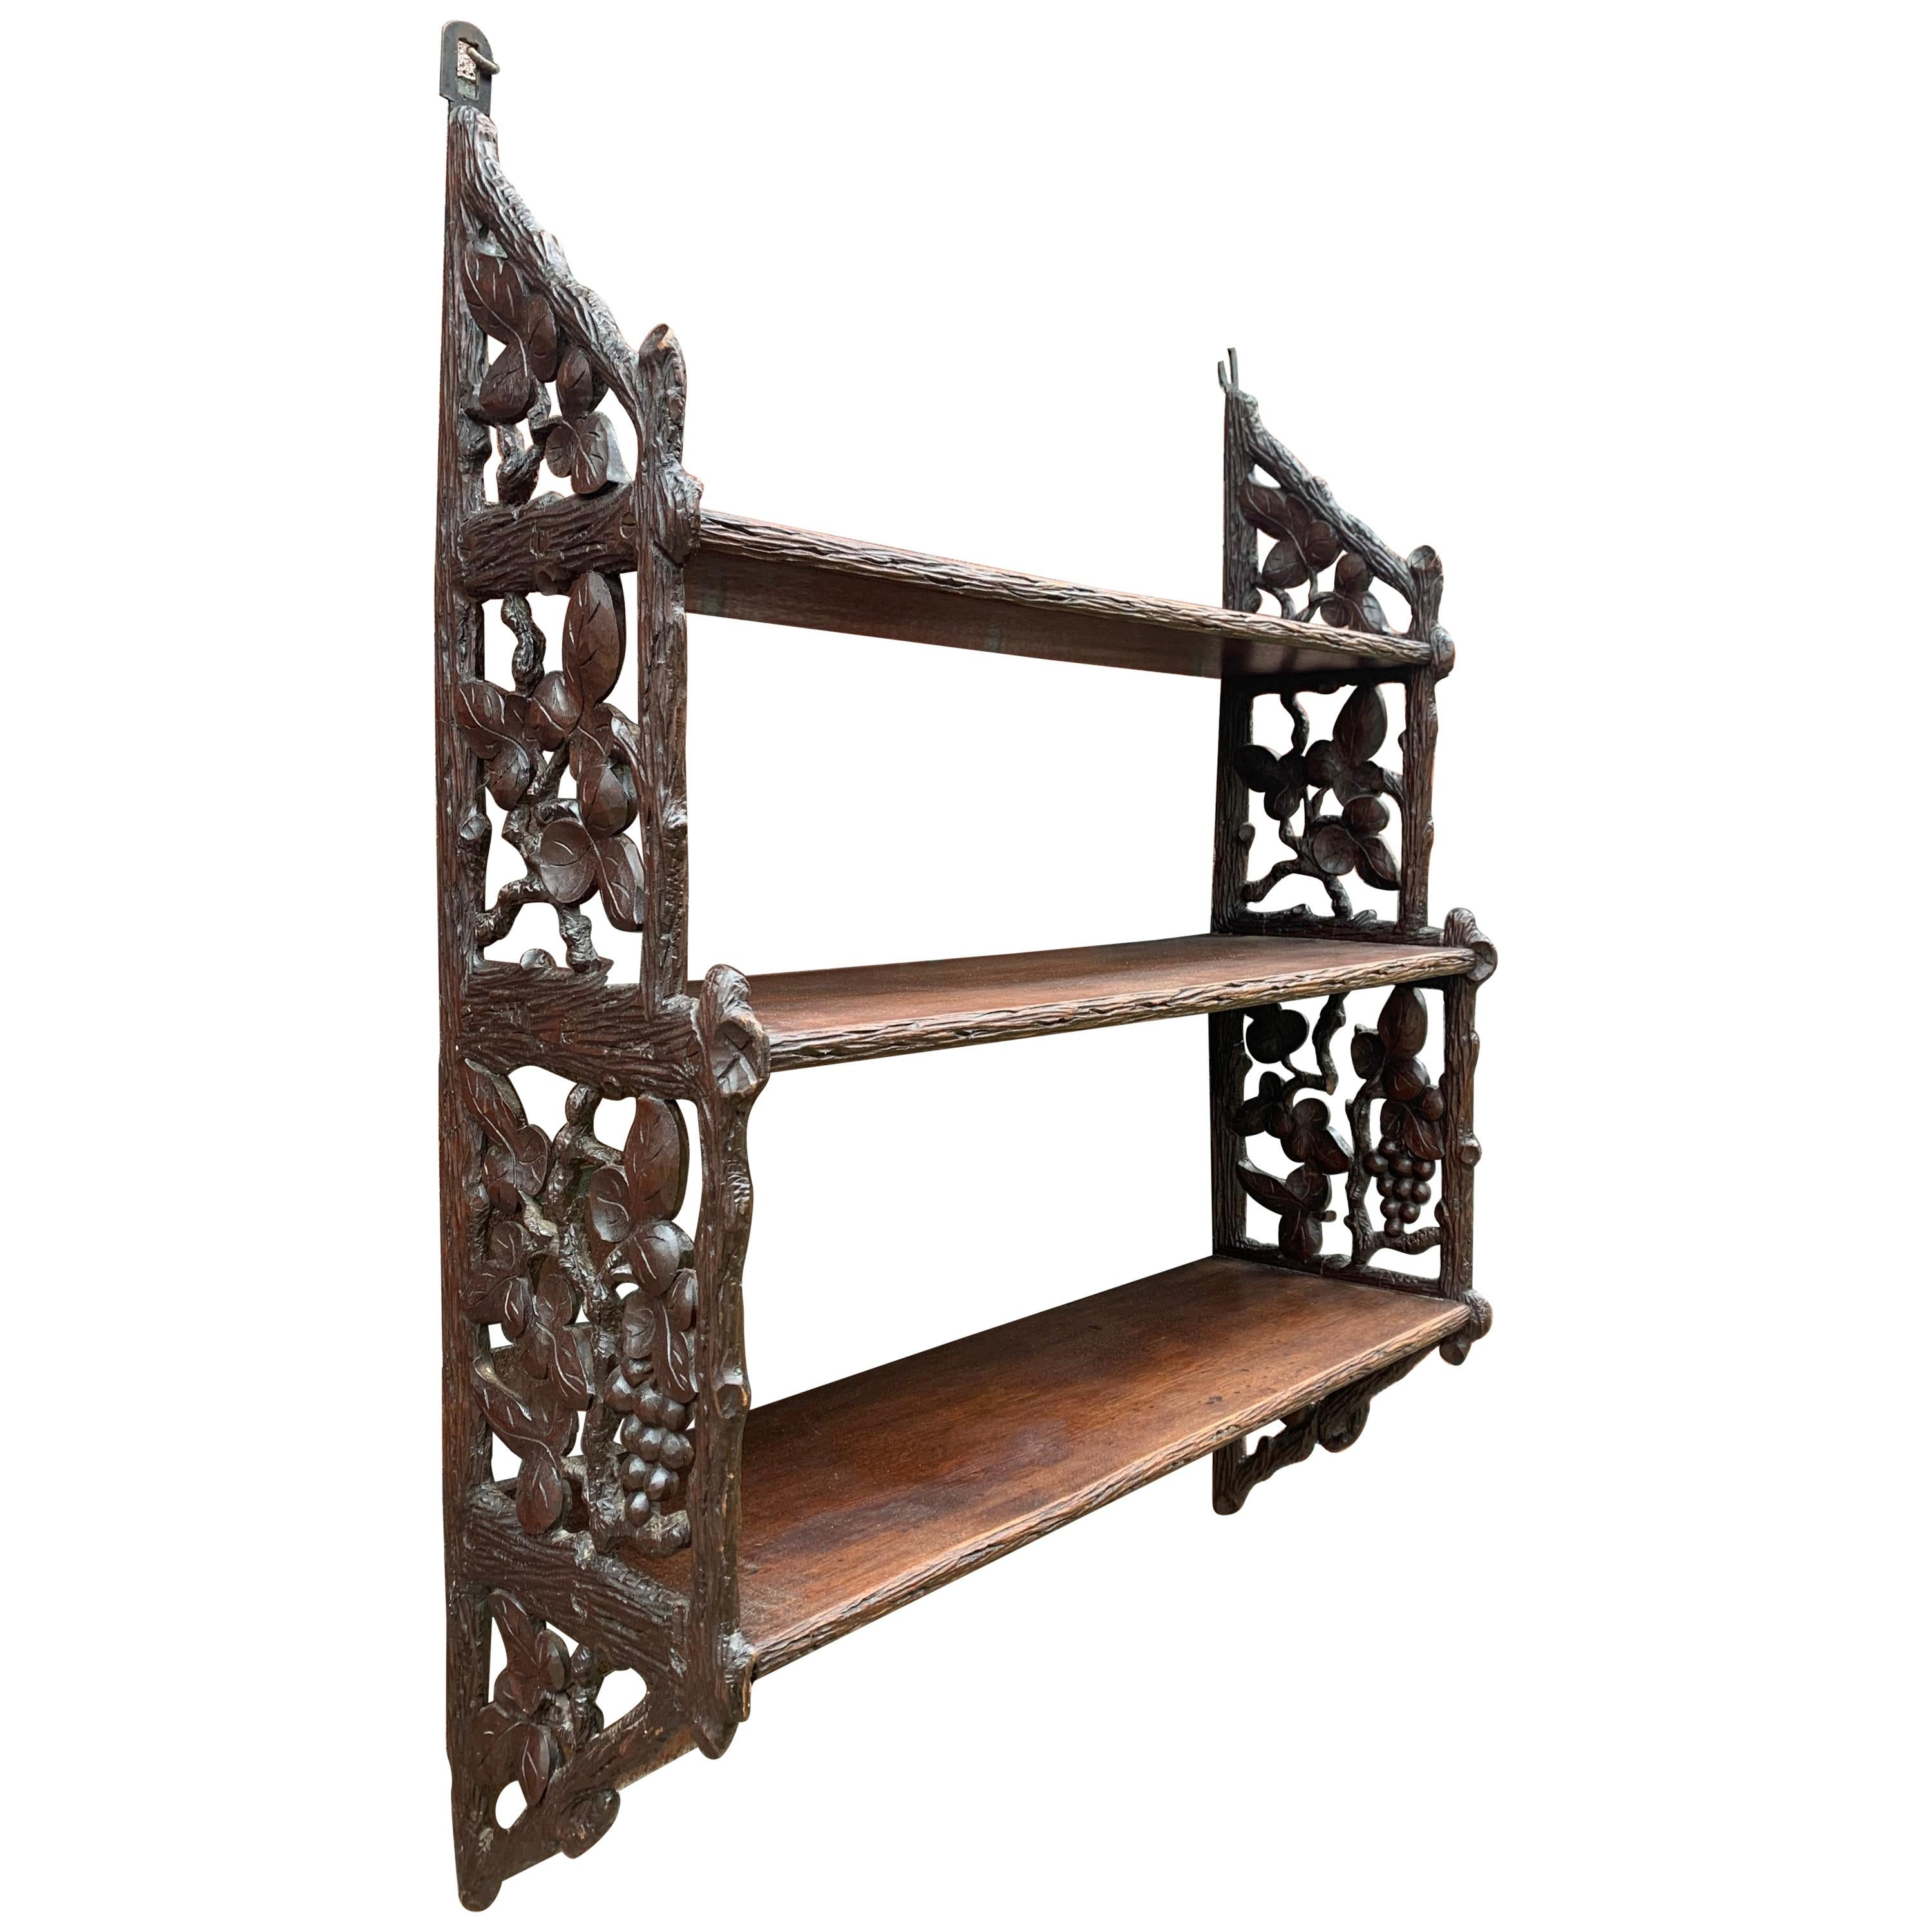 Antique Late 1800s Black Forest Handcrafted Walnut Hanging Wall Shelves / Rack